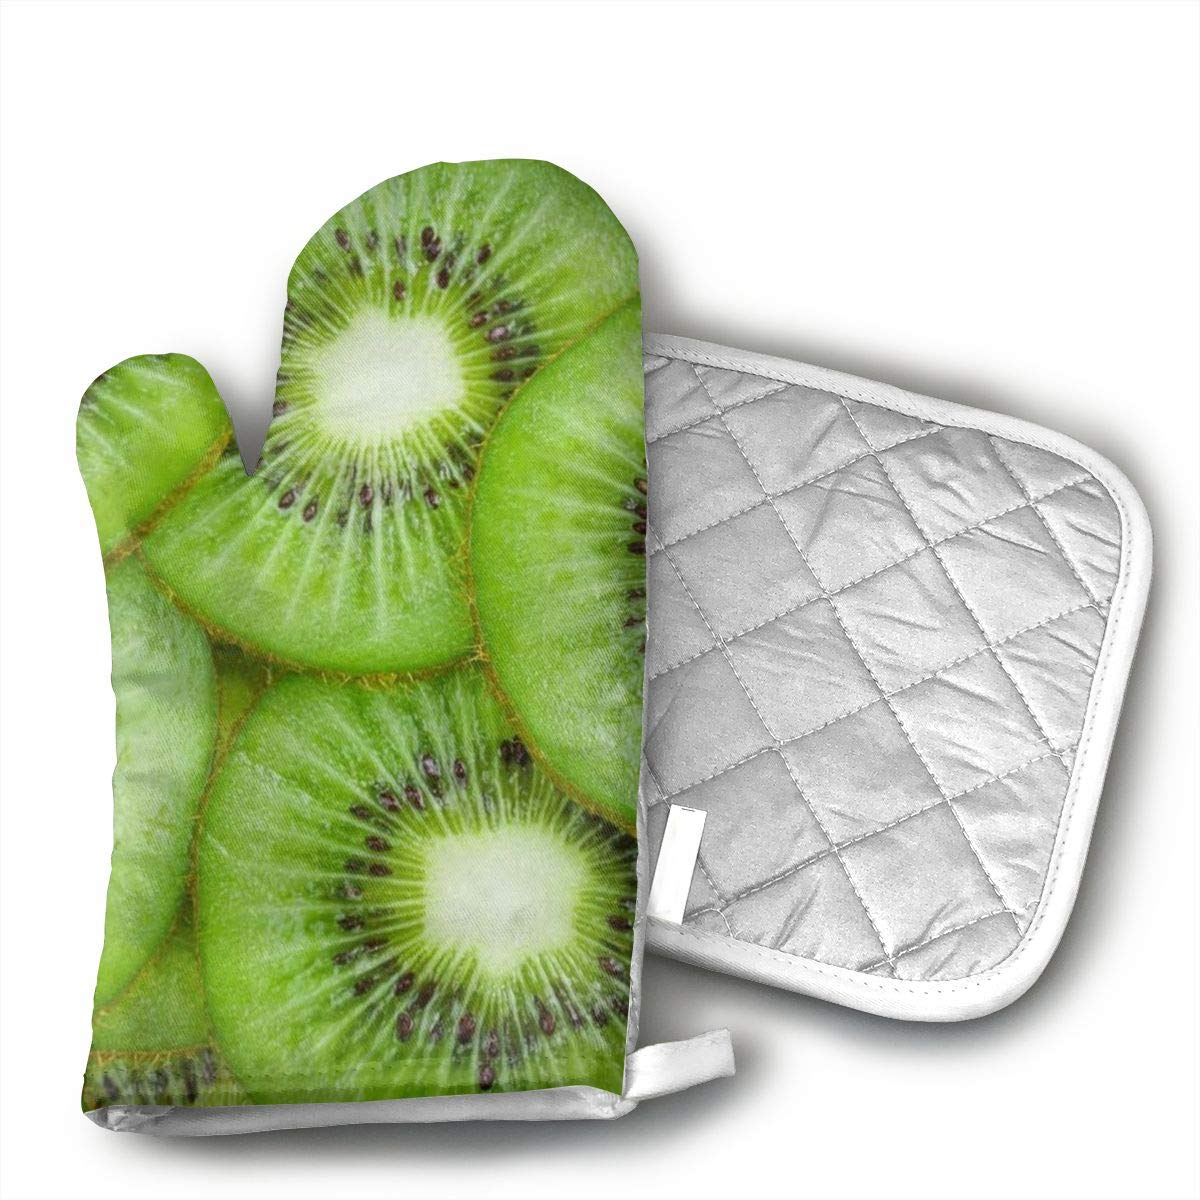 Wiqo9 Green Kiwi Fruit Pattern Adult Oven Mitts and Pot Holders Kitchen Mitten Cooking Gloves,Cooking, Baking, BBQ.